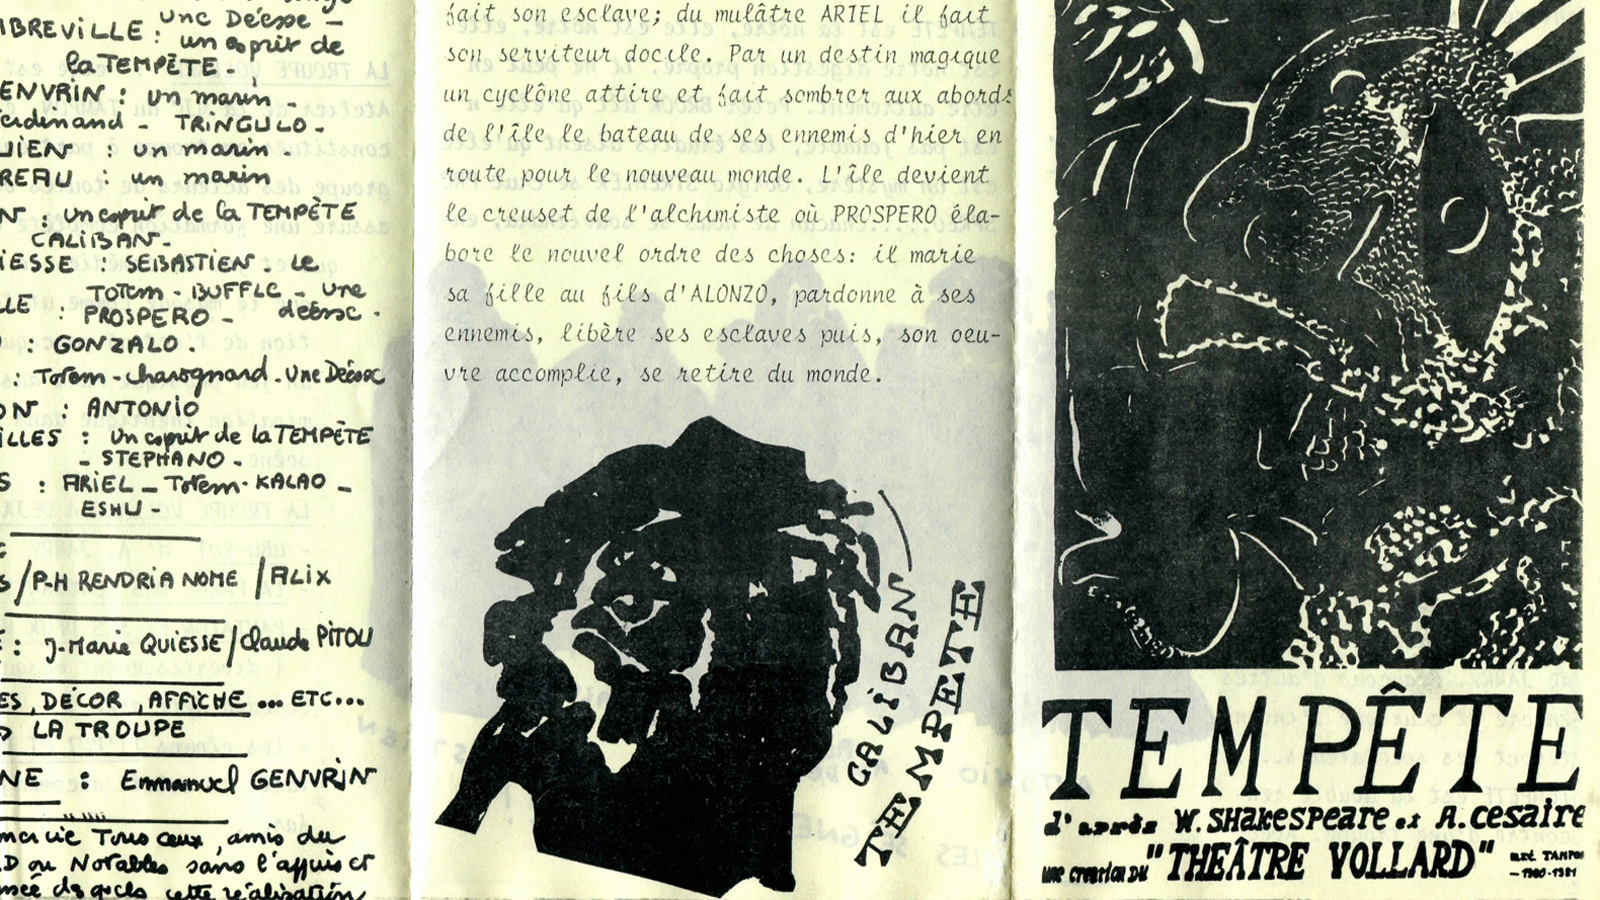 Post-colonial reading of The Tempest